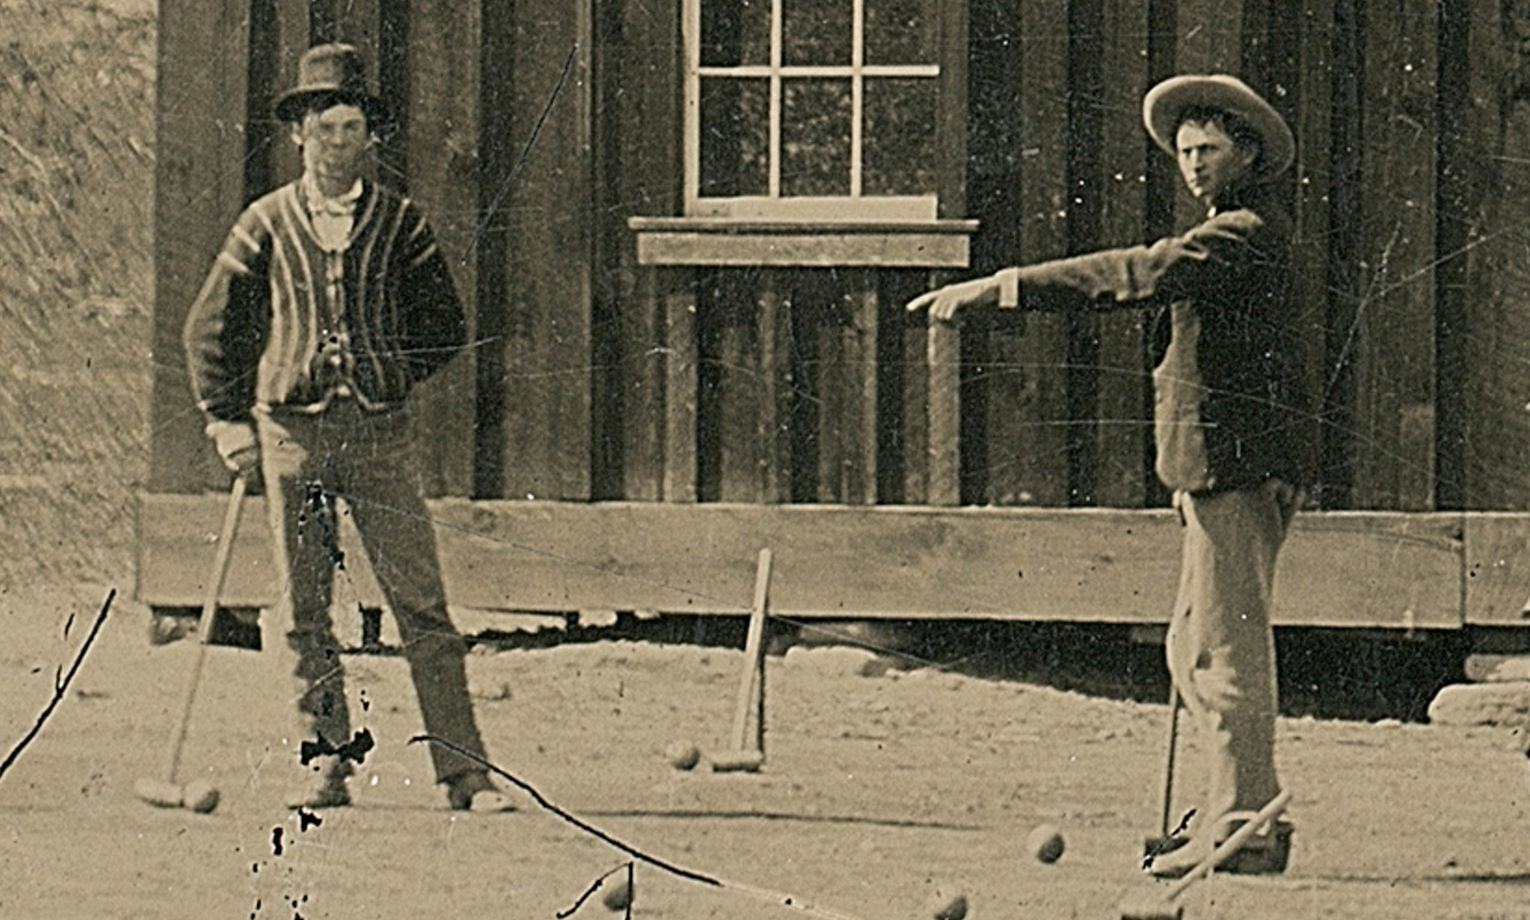 an introduction to the life and history of billy the kid Introducing history to kids 1954 academy awards® winners and history: students continue an introduction to the history of billy the kid studying plutarch's lives as.